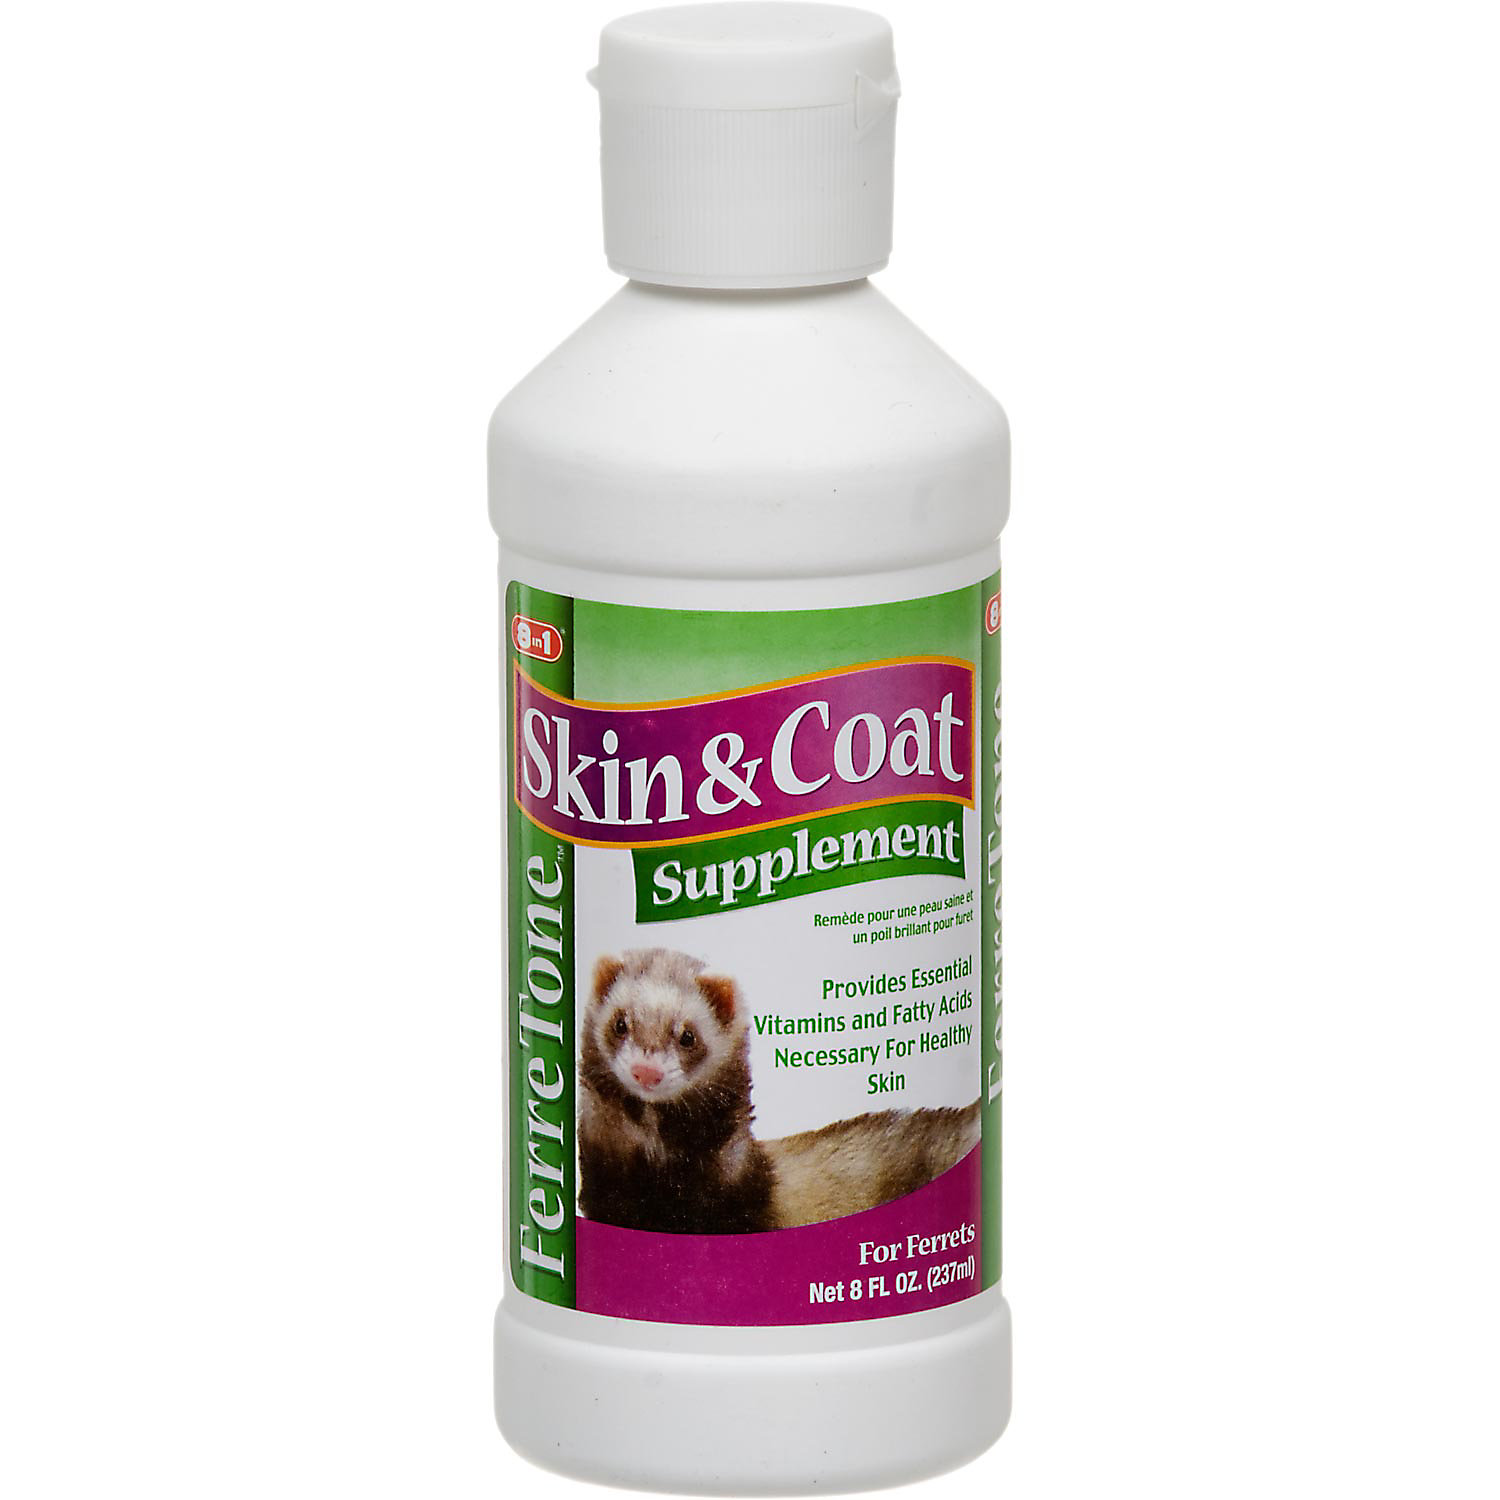 8 In 1 Ferretone Skin Coat Ferret Food Supplement 8 Oz.